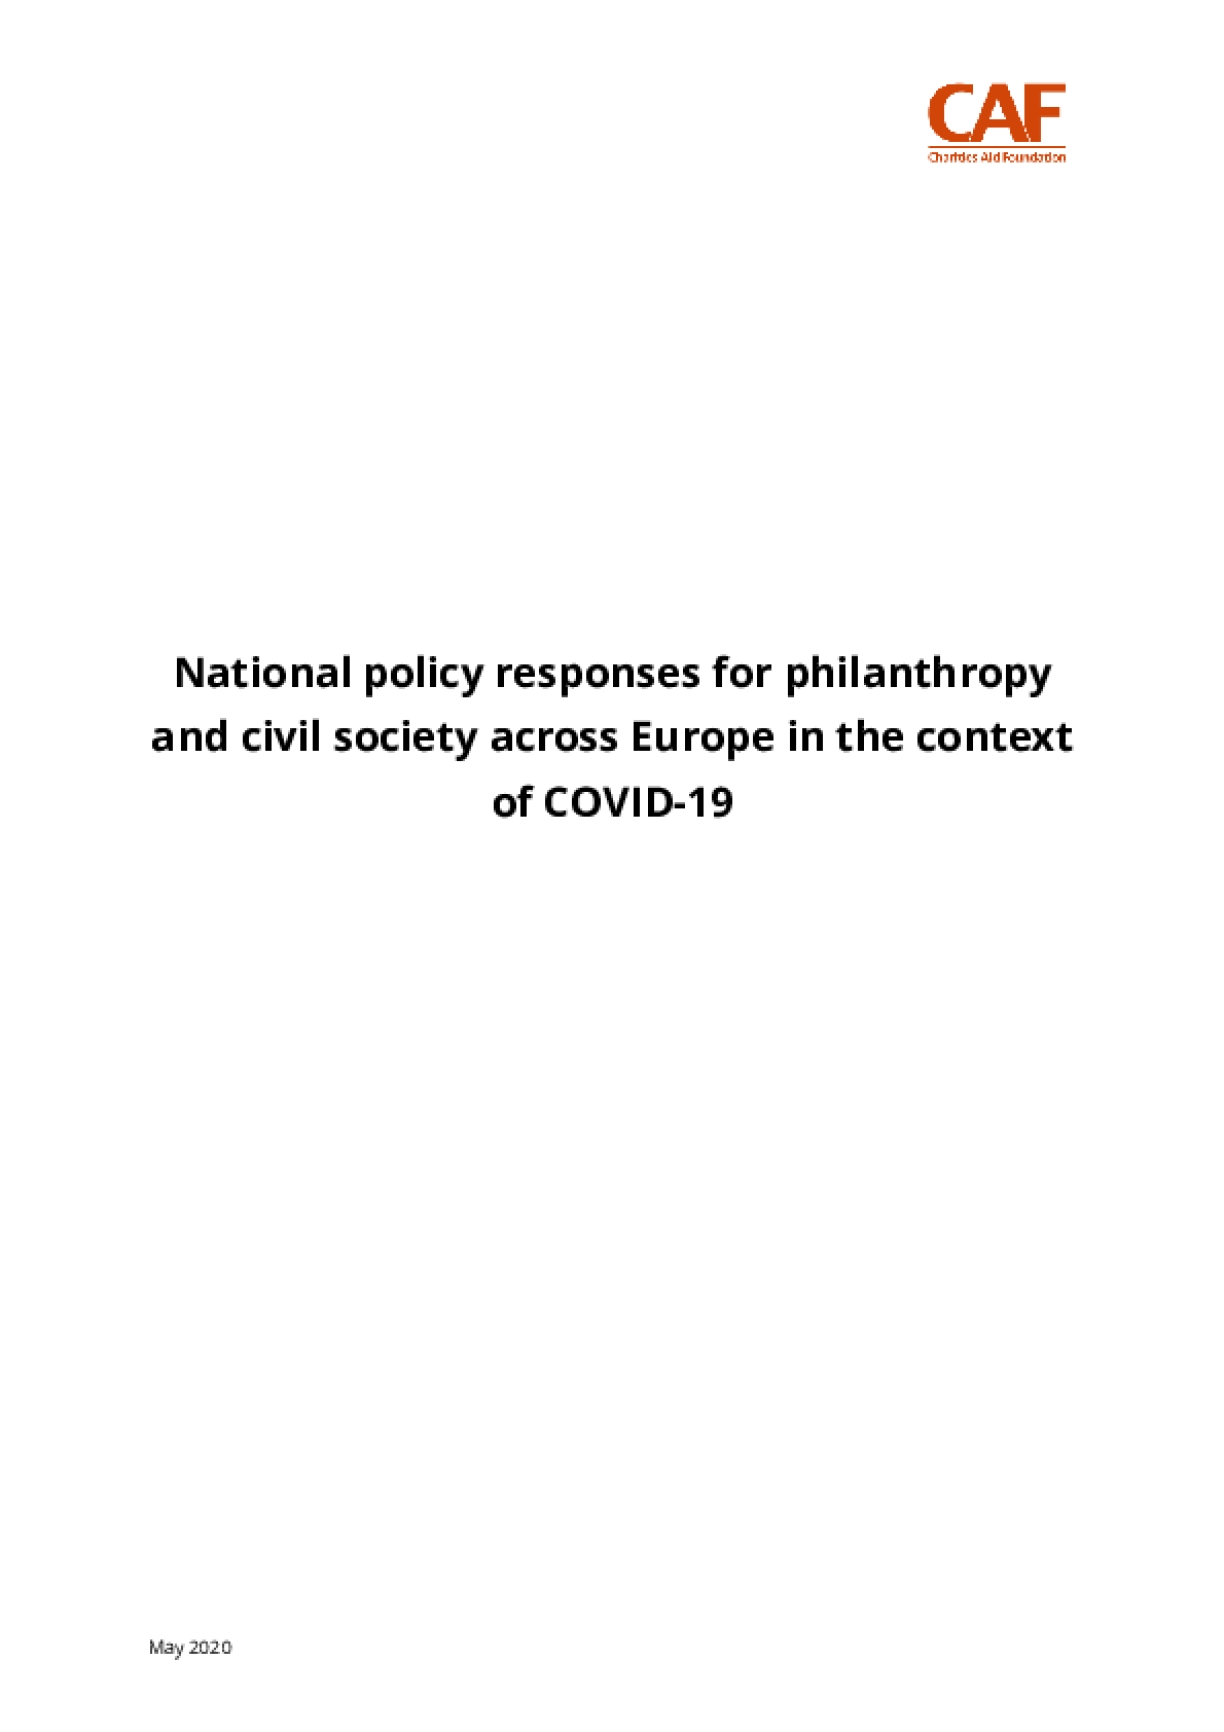 National policy responses for philanthropy and civil society across Europe in the context of COVID-19